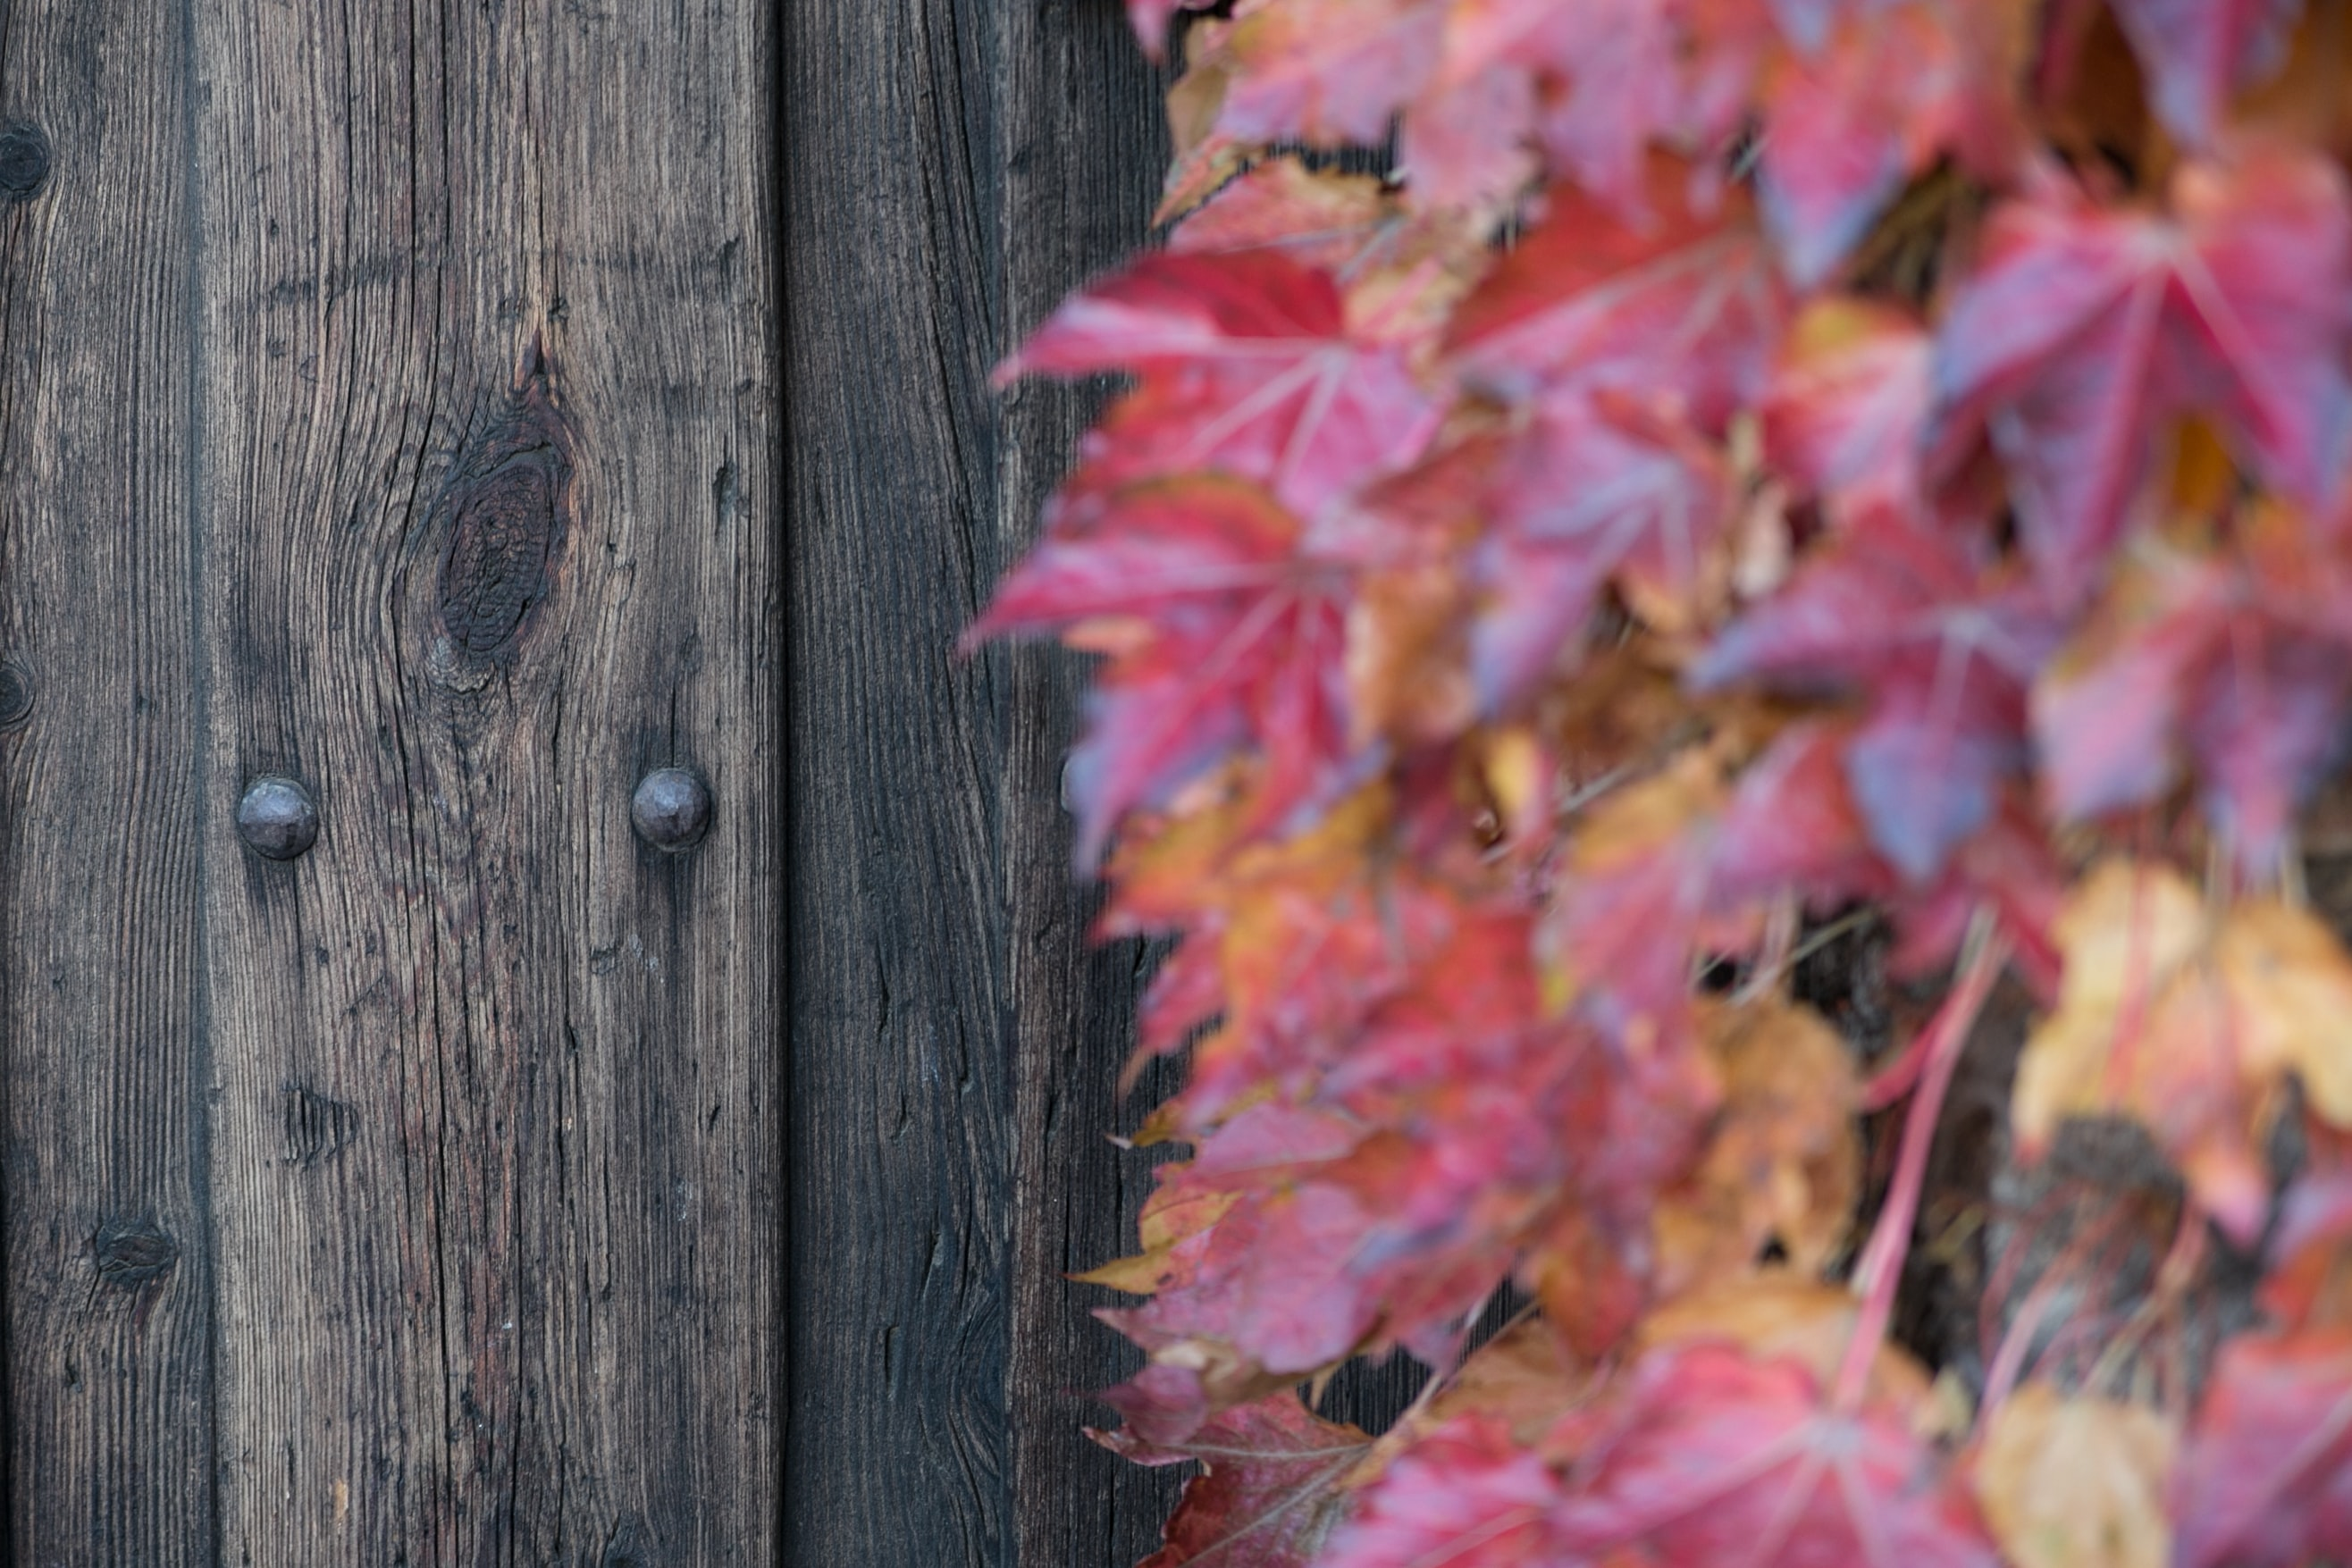 Red leaves against a fence during autumn.